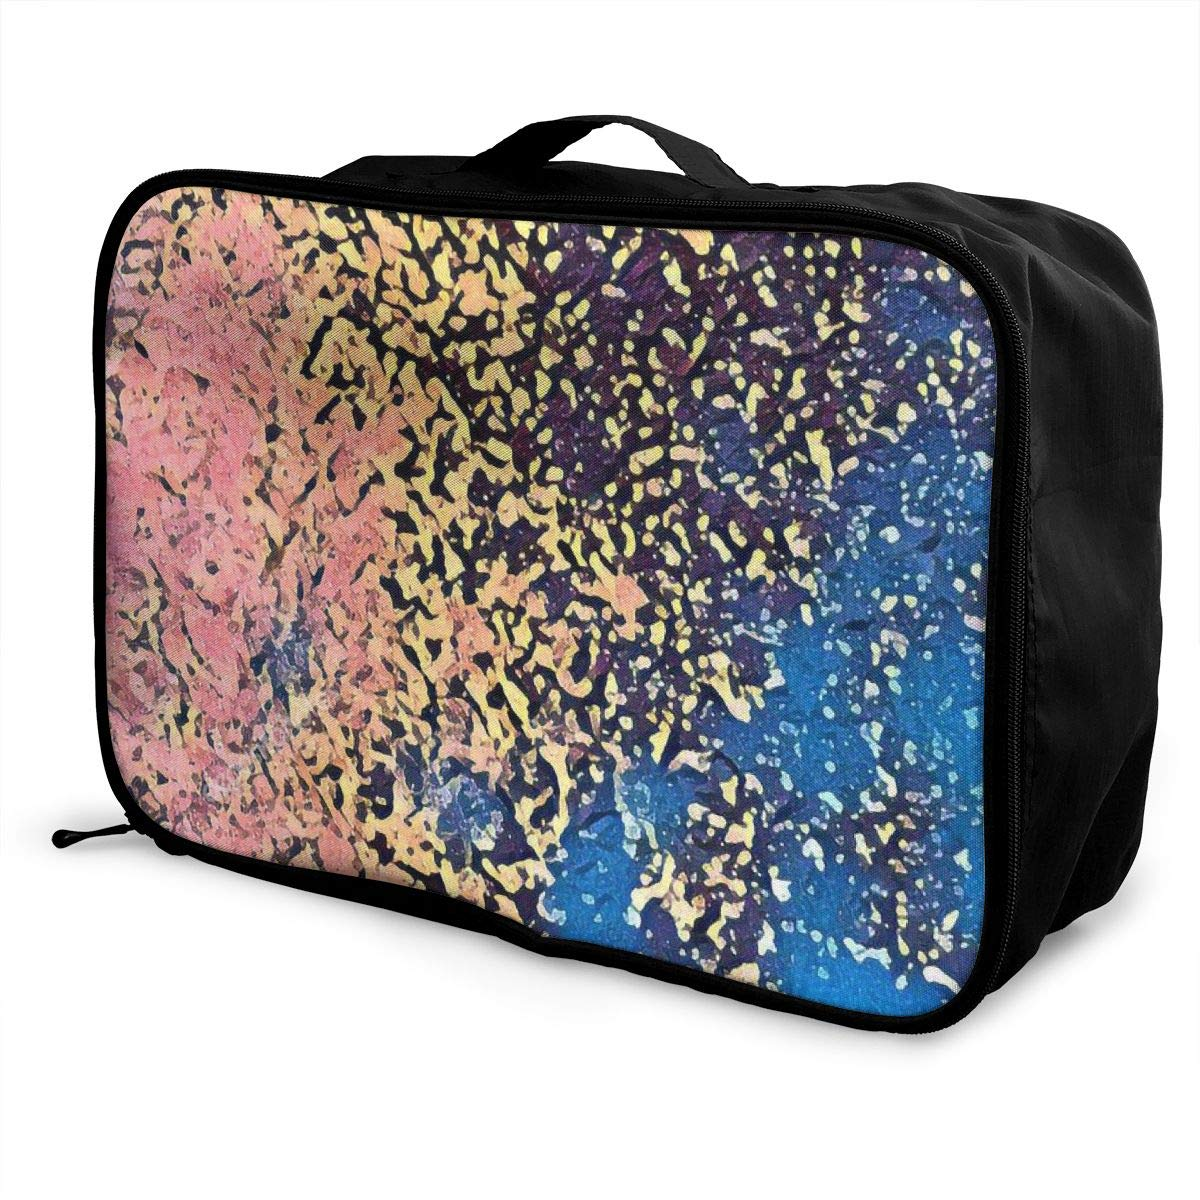 Pink And Blue Oil Painting Travel Lightweight Waterproof Folding Storage Carry Luggage Duffle Tote Bag Large Capacity In Trolley Handle Bags 6x11x15 Inch